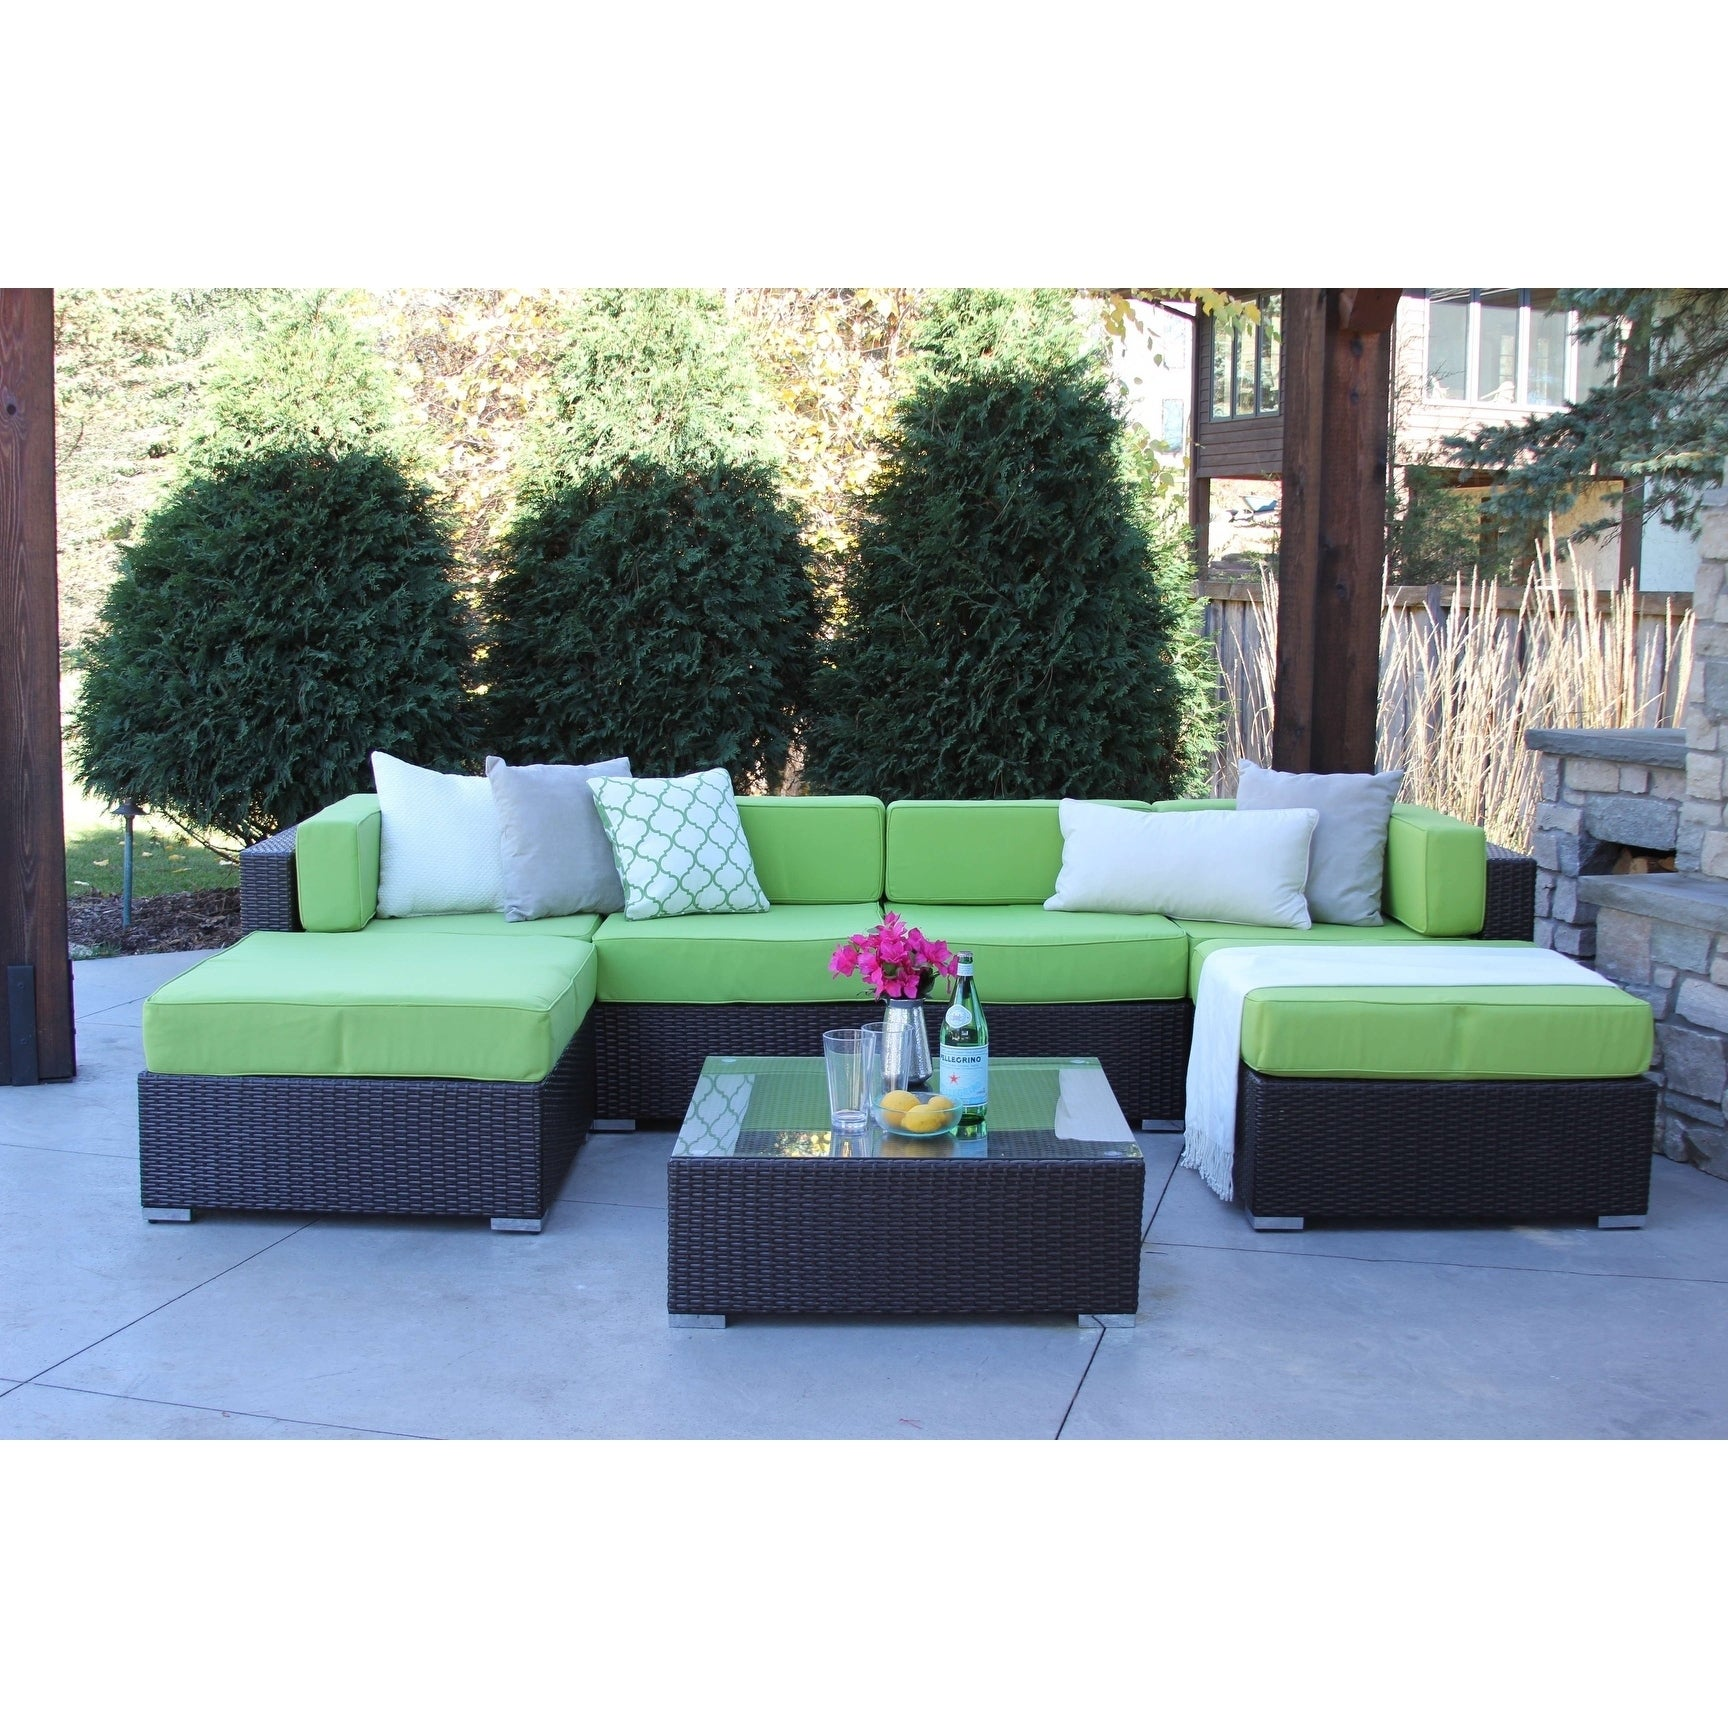 c2b7d9f7fb3 Shop Dupont 7-PC Modern Outdoor Rattan Patio Furniture Sofa Set ...